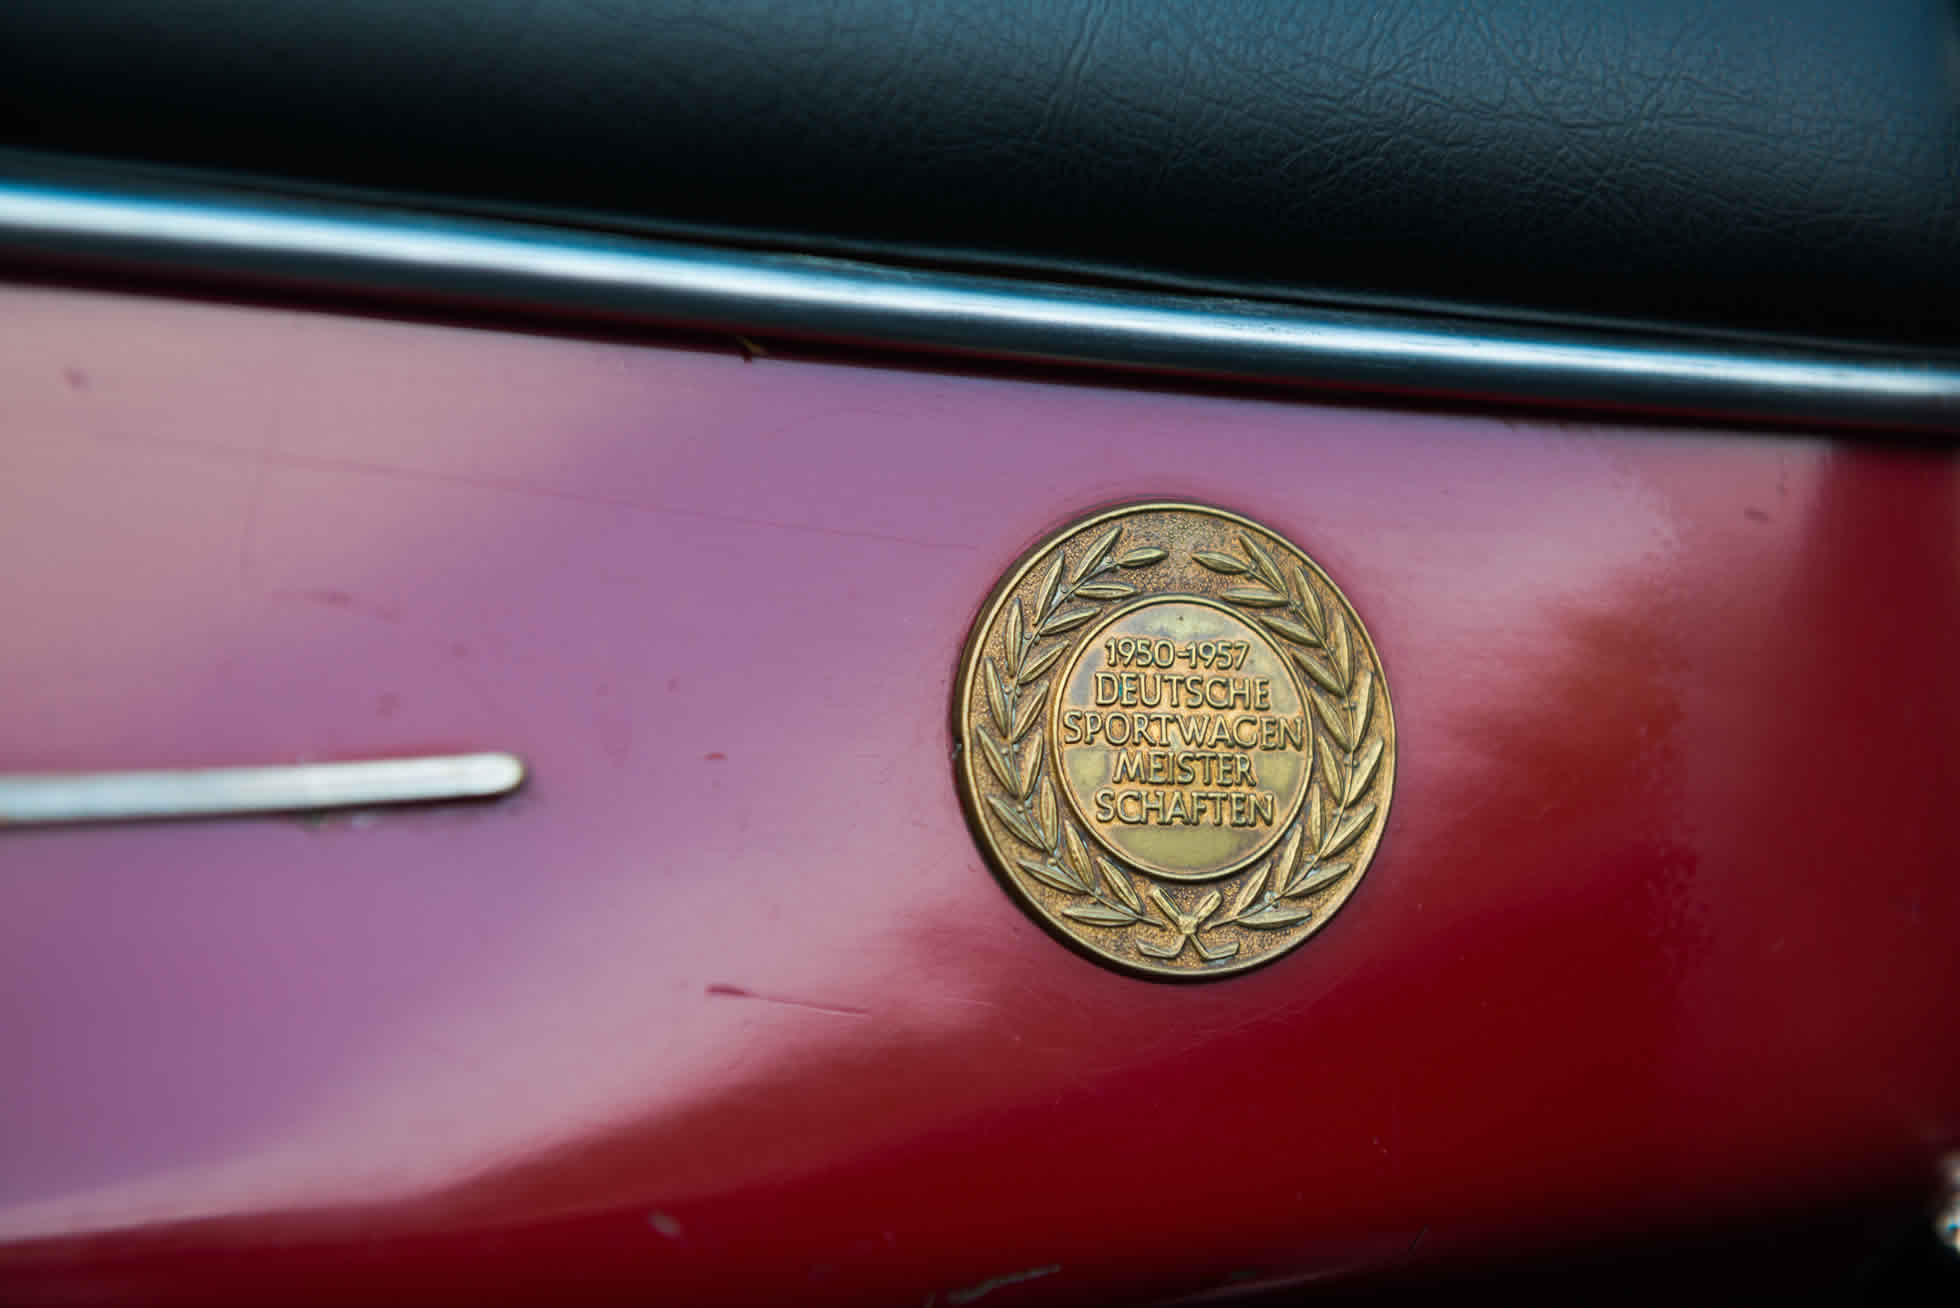 For Sale 1958 Porsche 356 Speedster badging